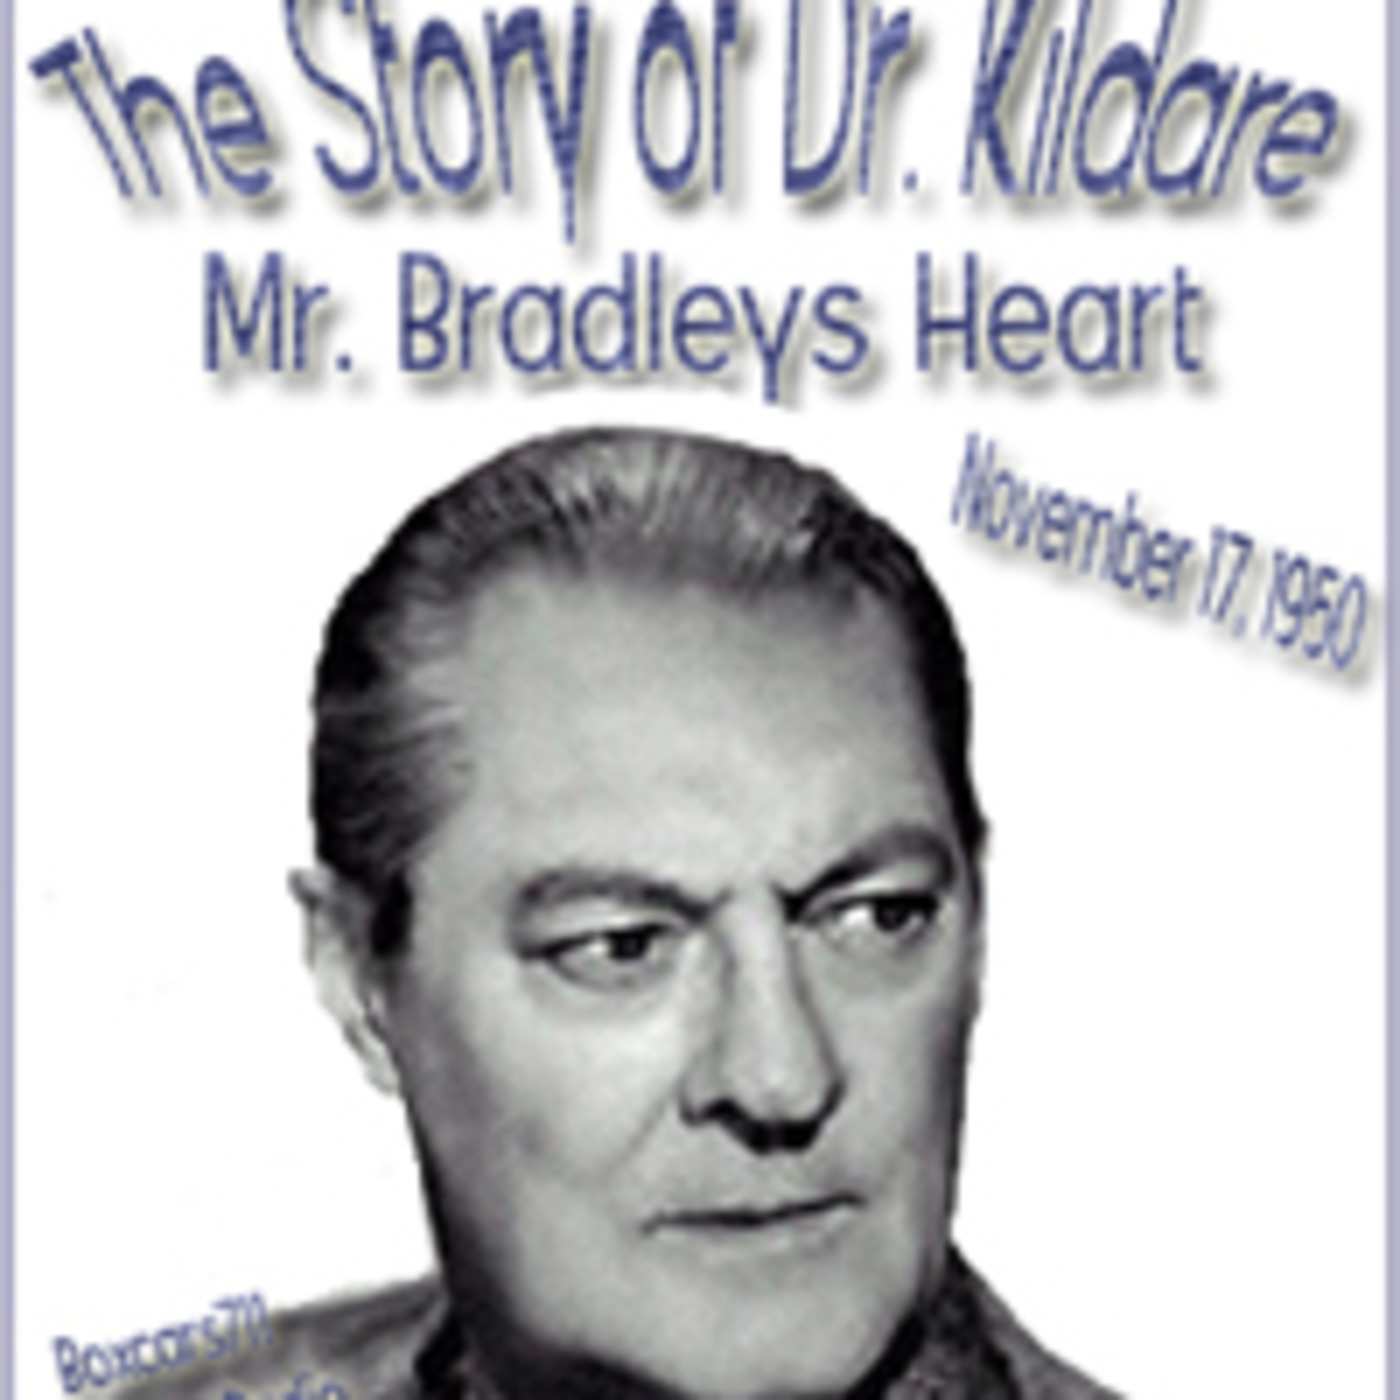 The Story Of Dr. Kildare - Mr. Bradley's Heart (11-17-50)